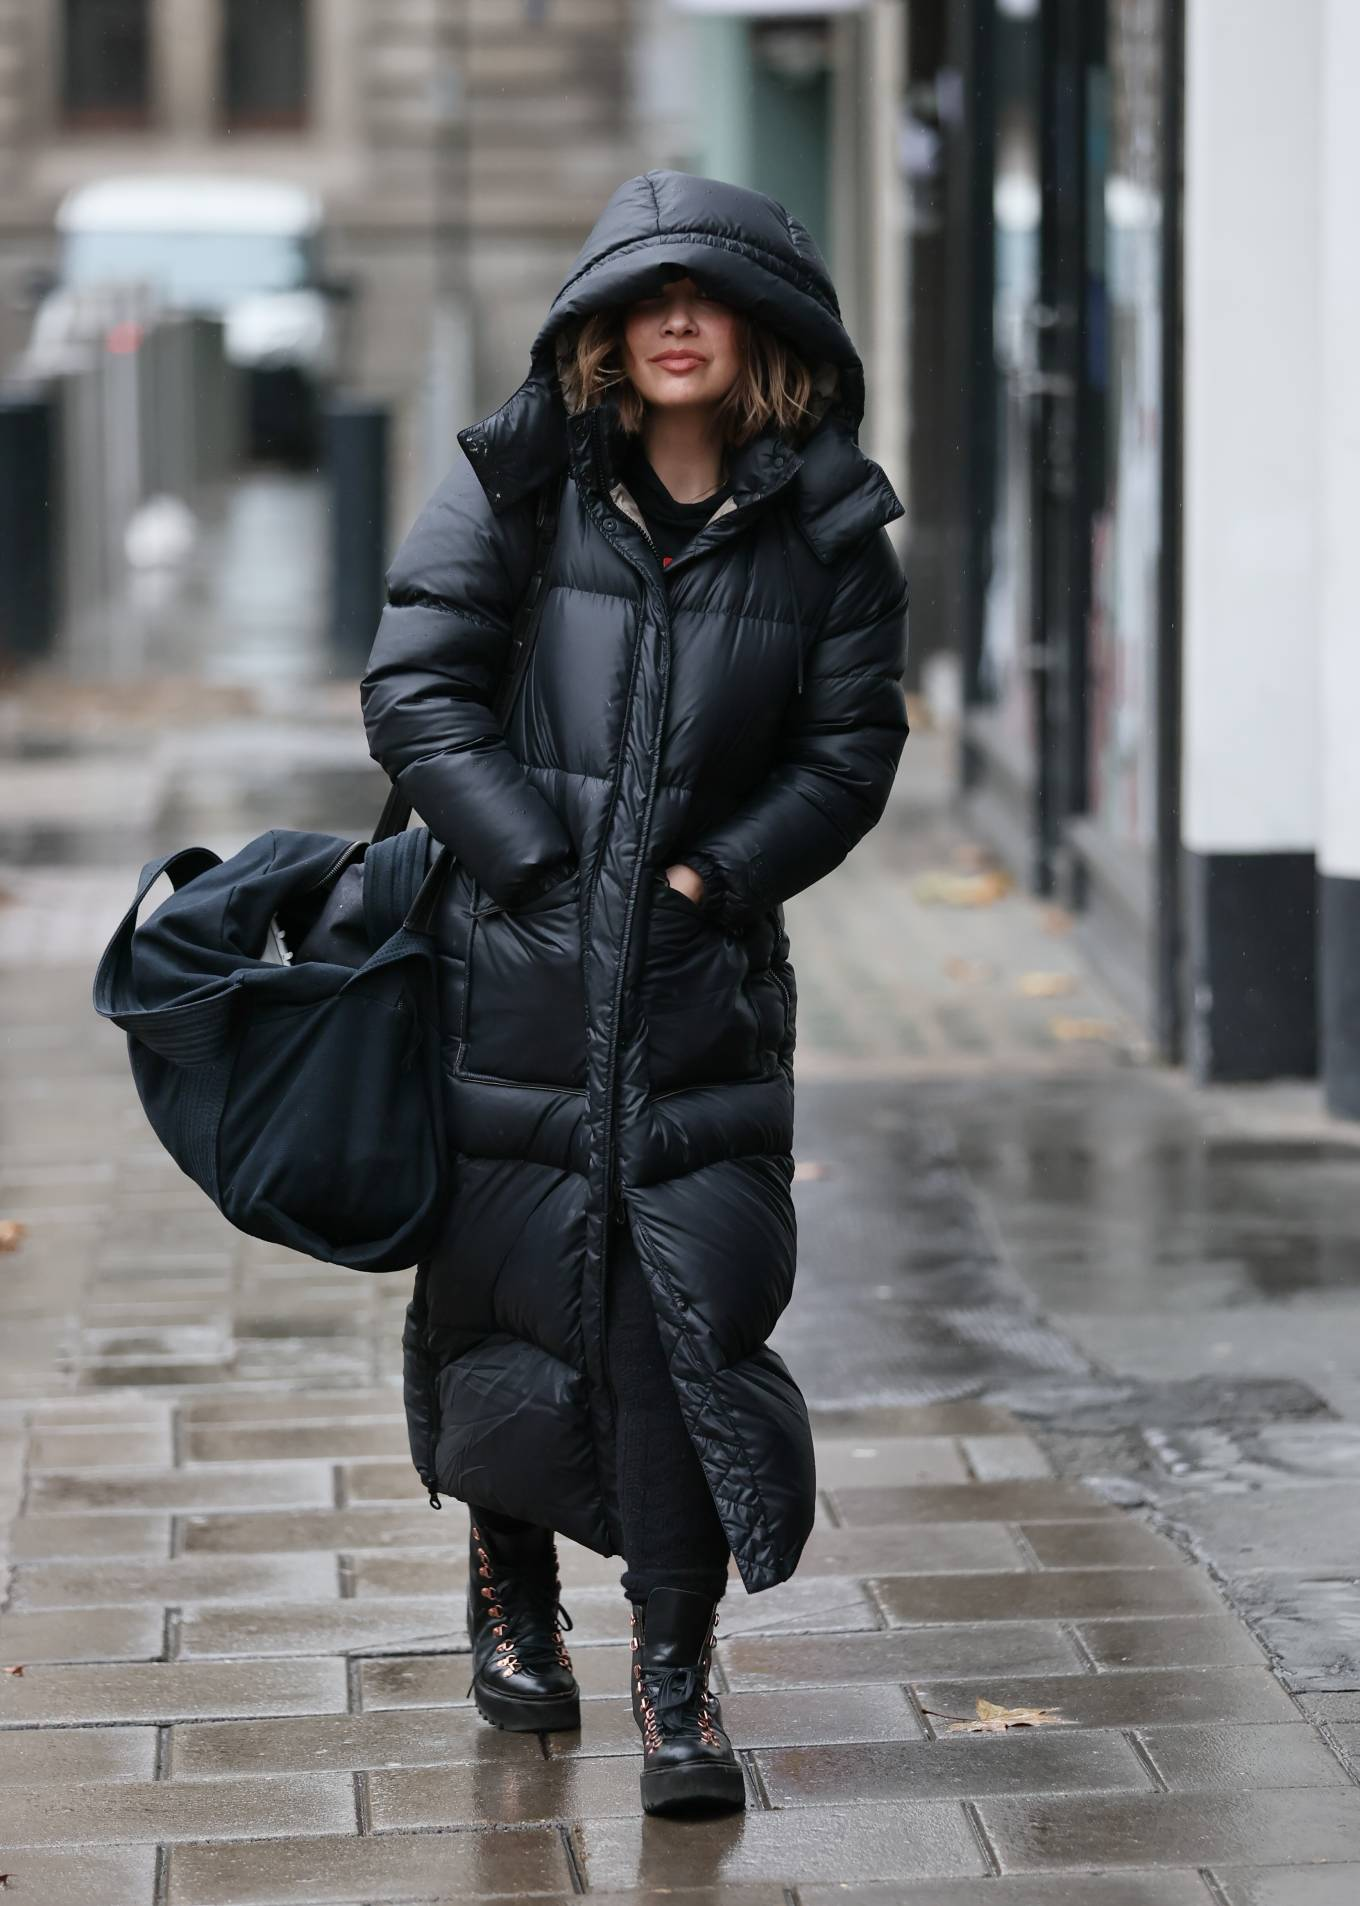 Myleene Klass 2020 : Myleene Klass – In a warm coat arriving at Smooth radio in London-02